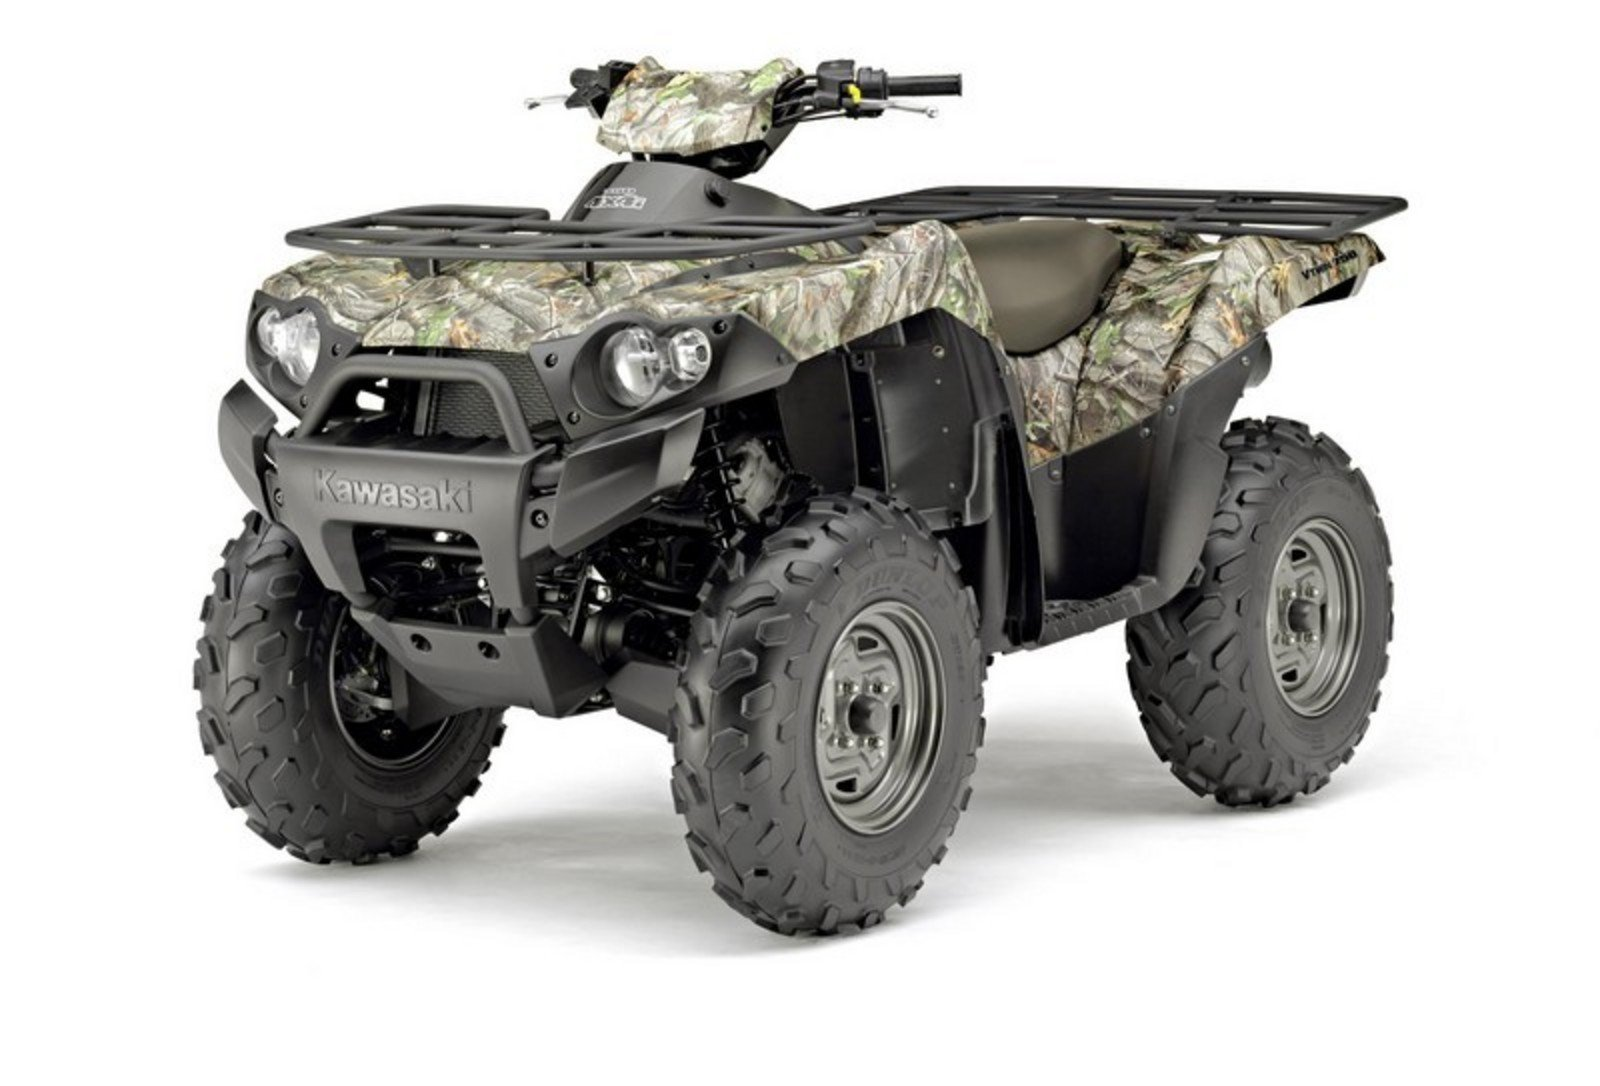 2006 Kawasaki Brute Force 750 4x4i Camo Review Top Speed